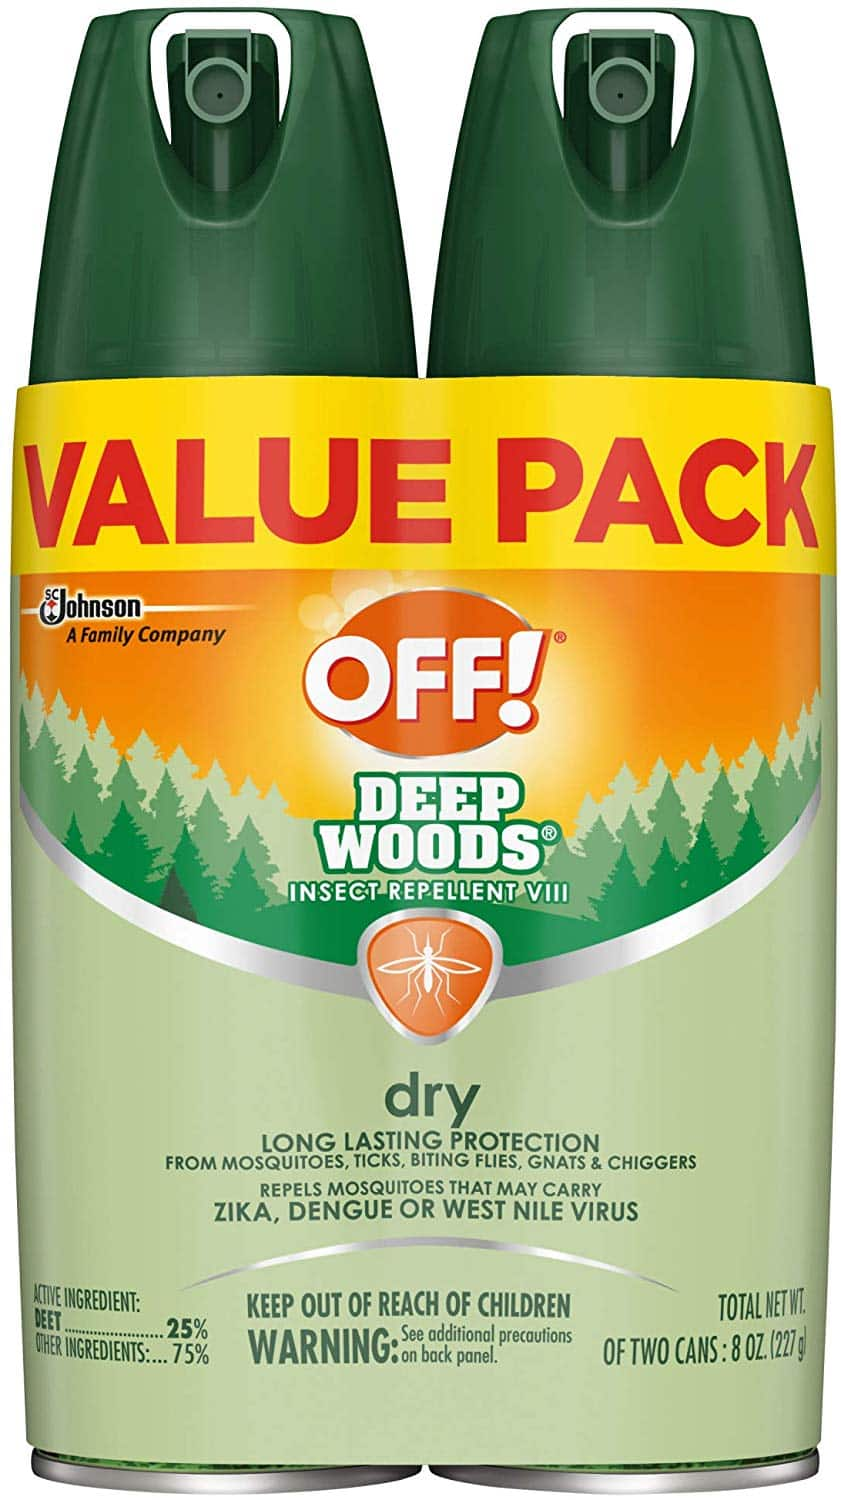 2-Ct. 4oz. Cans OFF! Deep Woods Insect Repellent VIII Dry $7.59 5% or $6.79 15% - Amazon